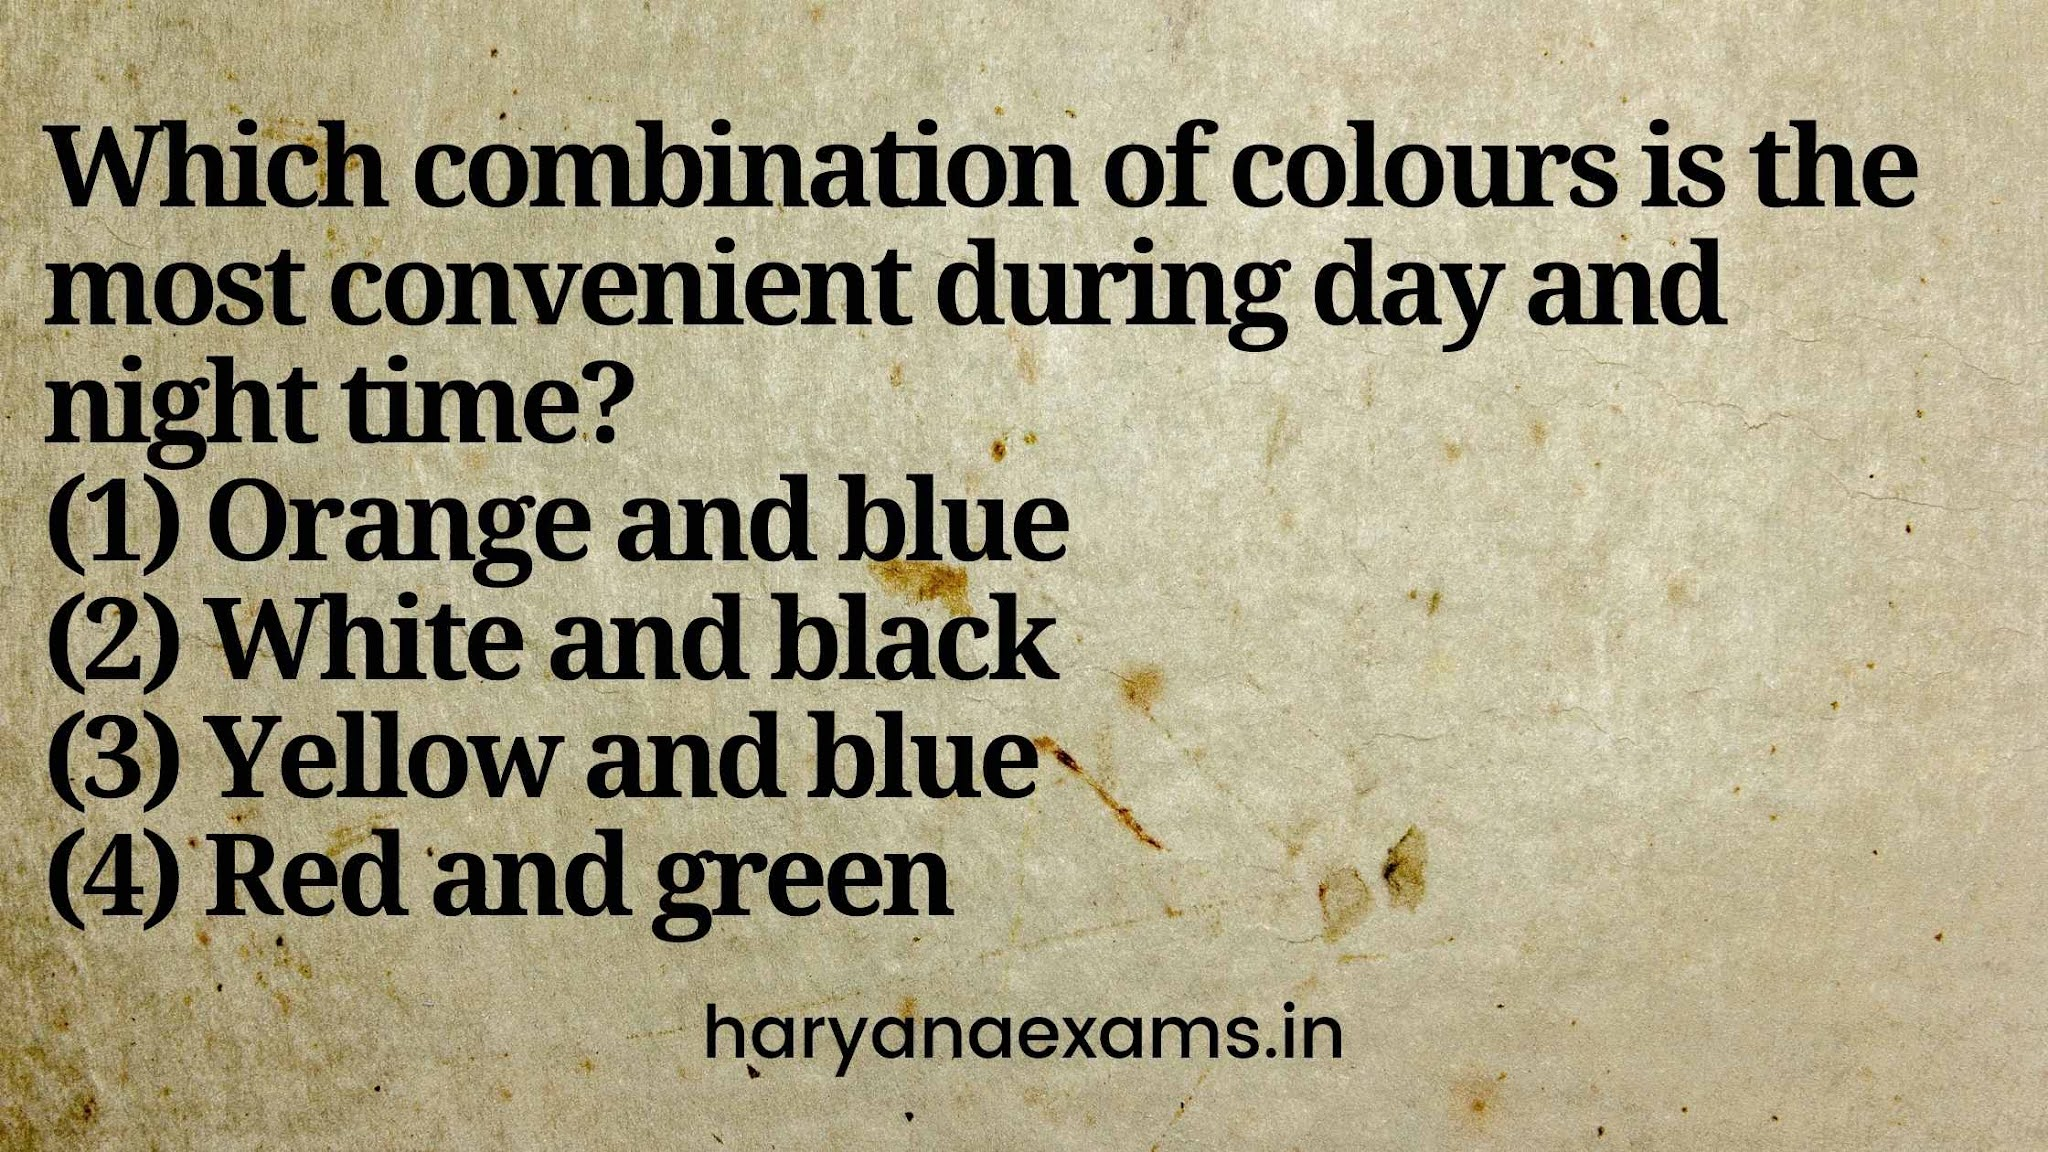 Which combination of colours is the most convenient during day and night time?   (1) Orange and blue   (2) White and black   (3) Yellow and blue   (4) Red and green